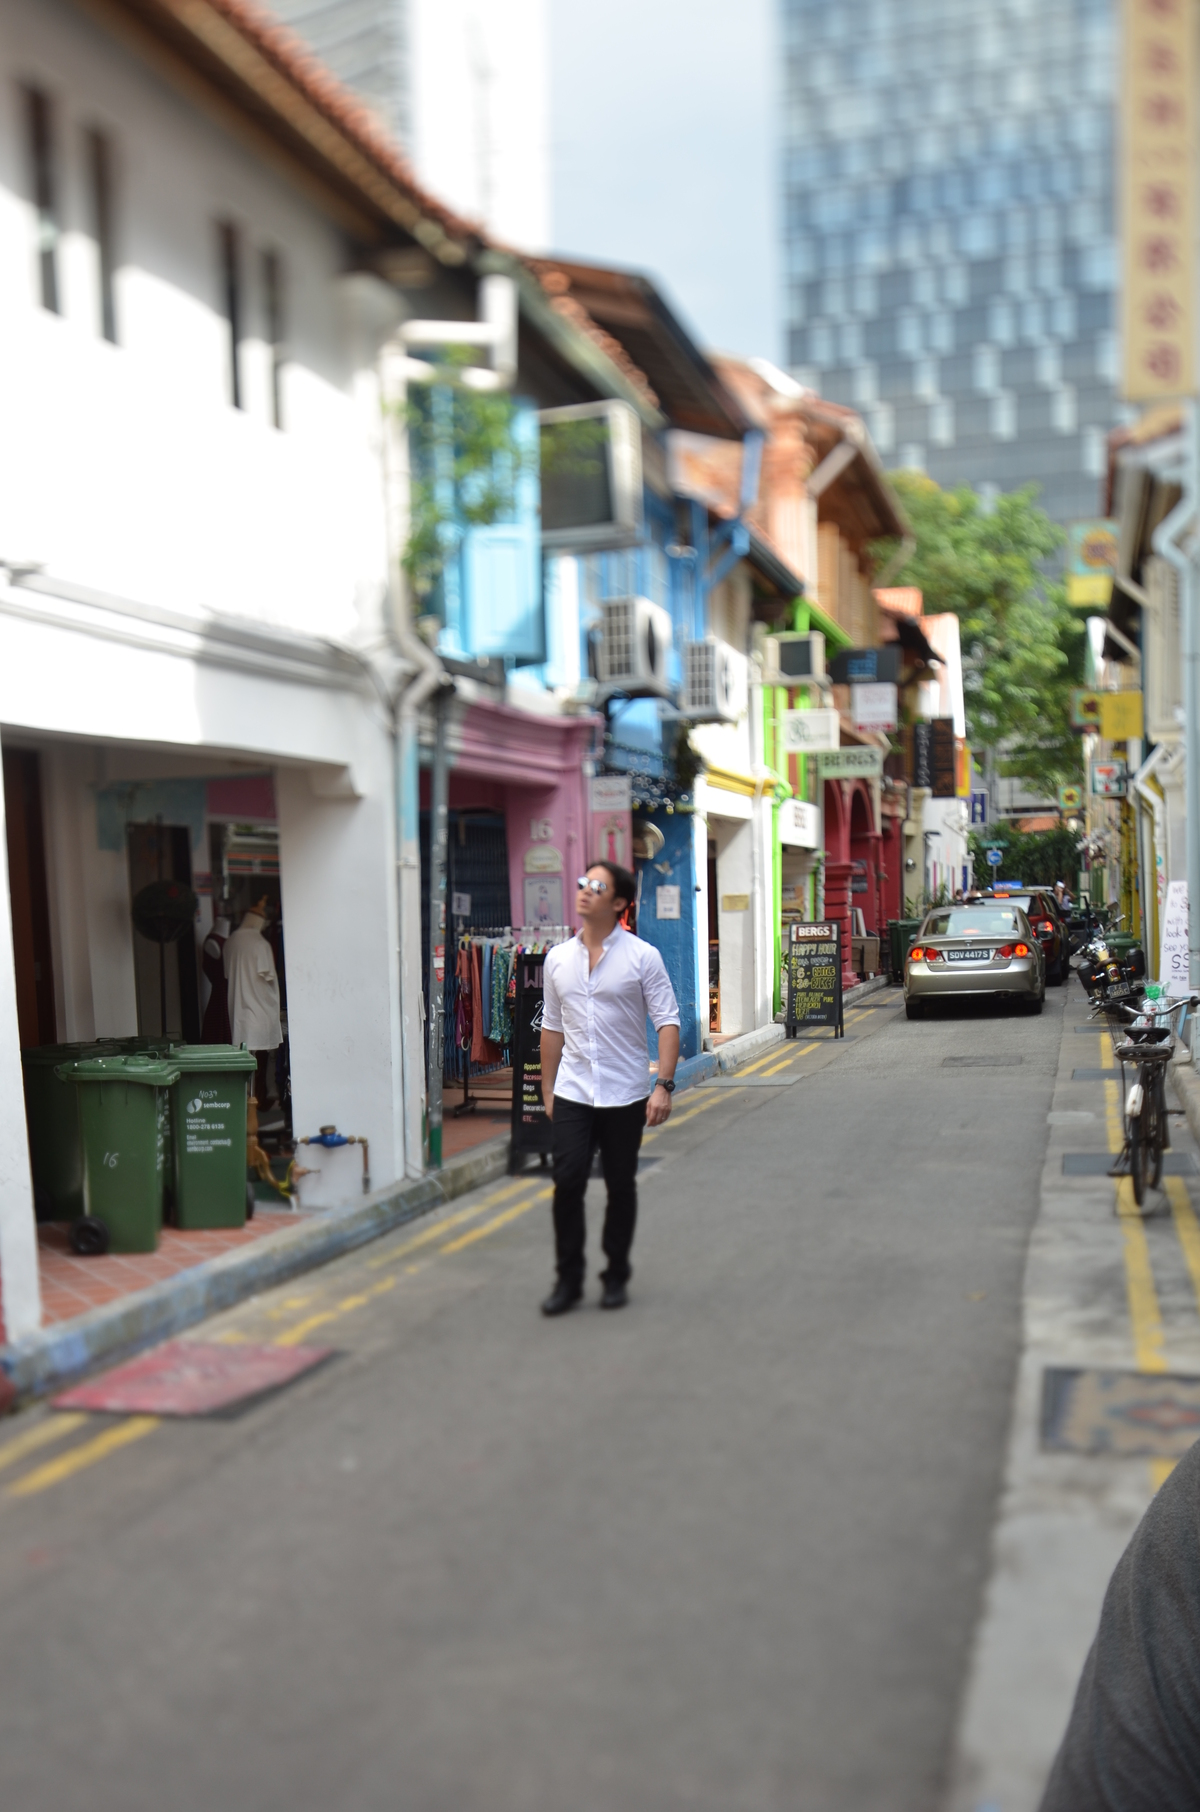 Pomeroy visiting the shophouses in Singapore. Image courtesy of Pomeroy Studios.